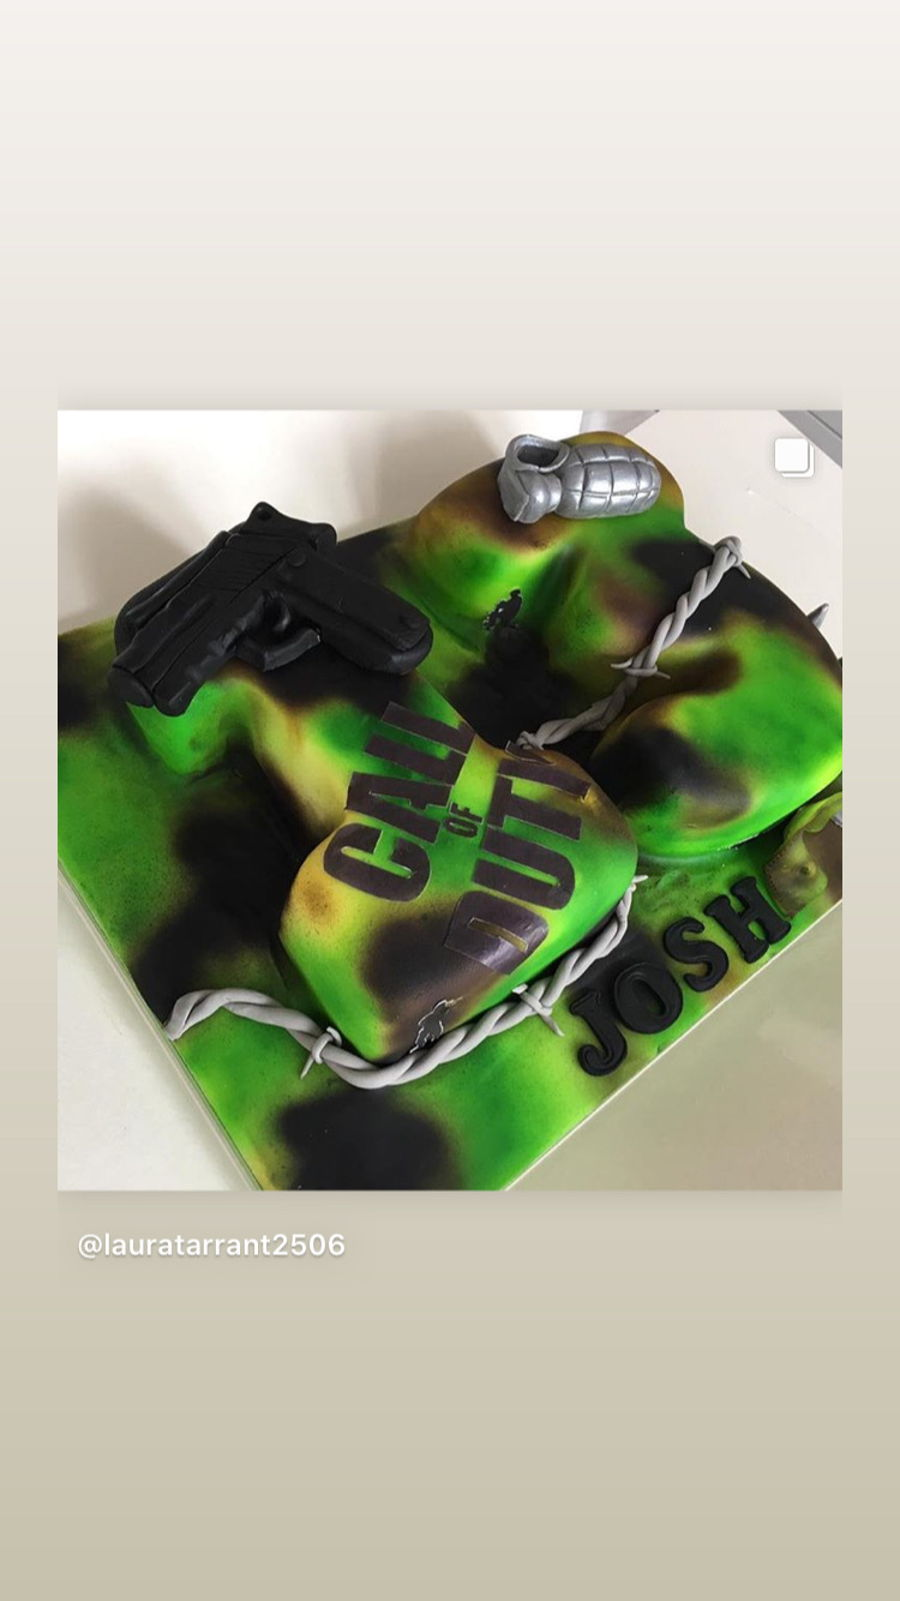 Call Of Duty Camo Cake on Cake Central